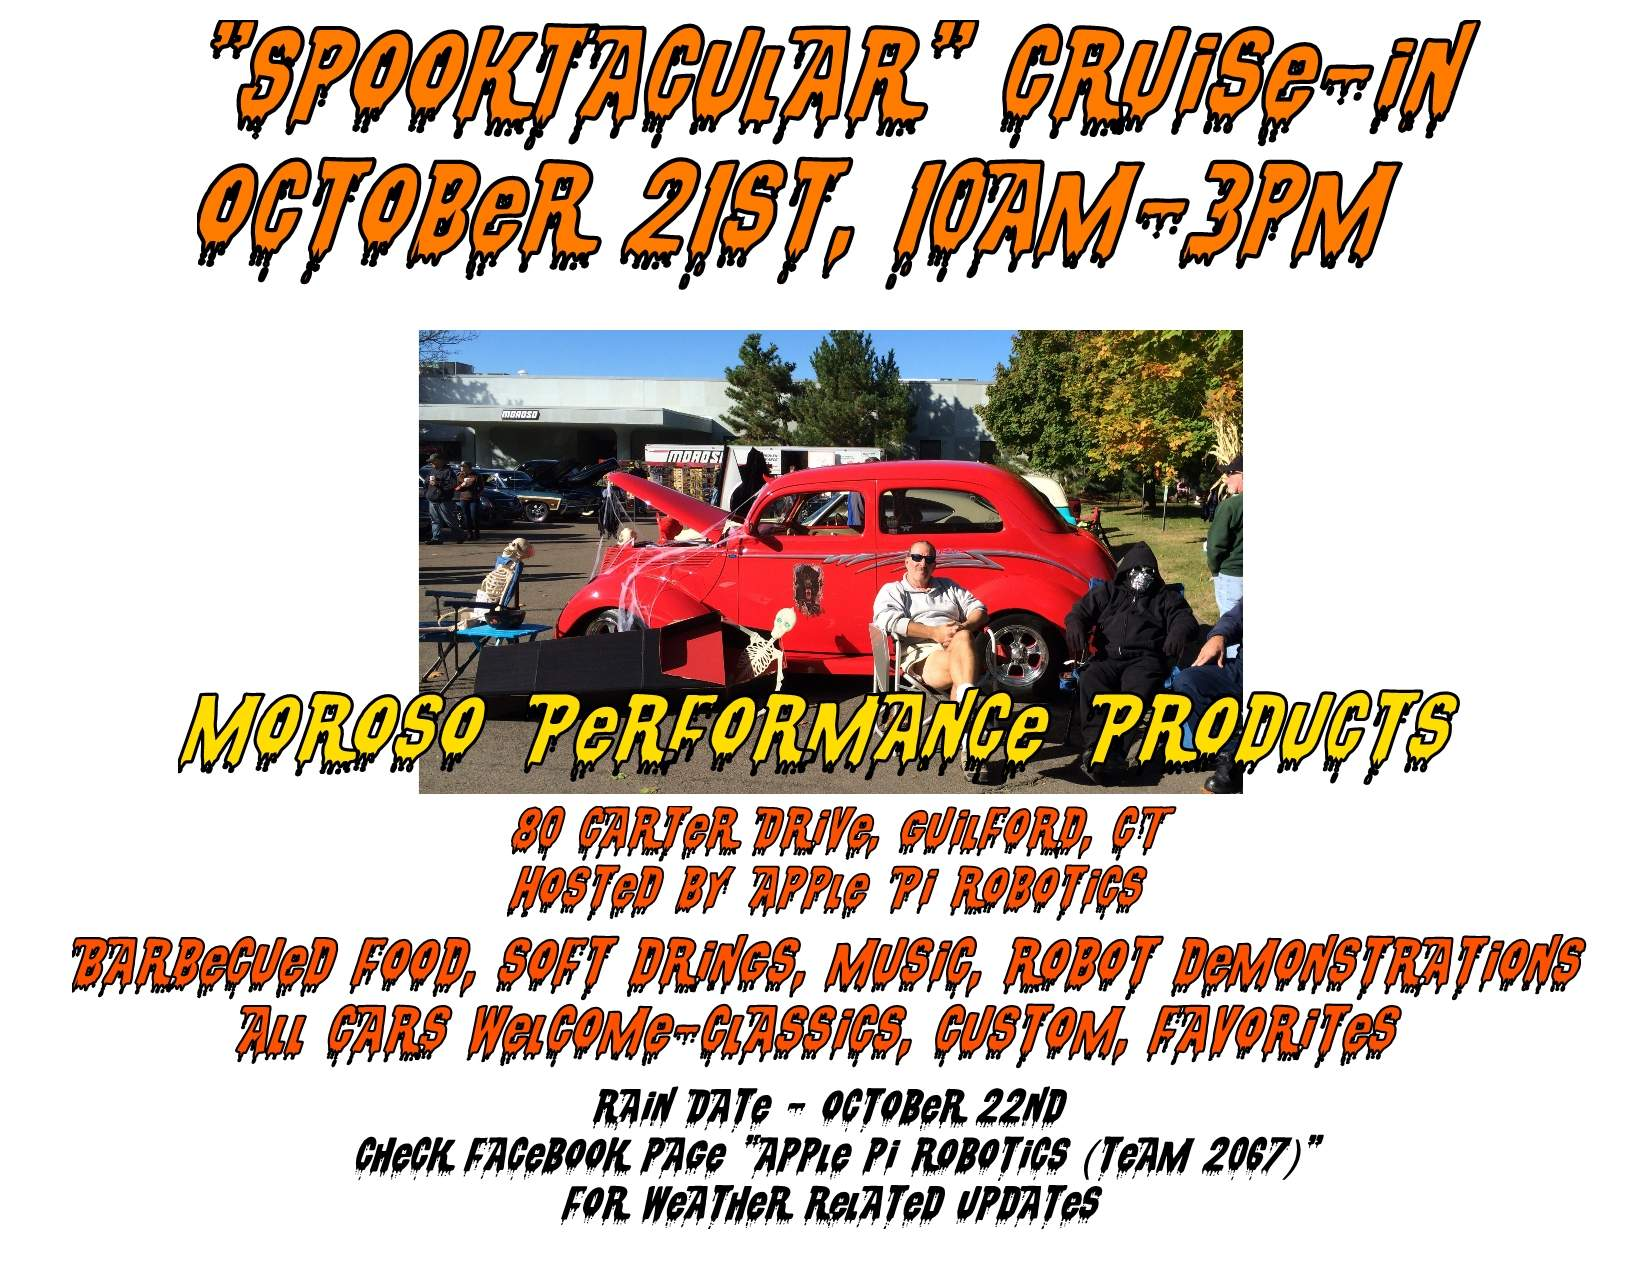 Spooktacular Cruise In at Moroso Performance Products